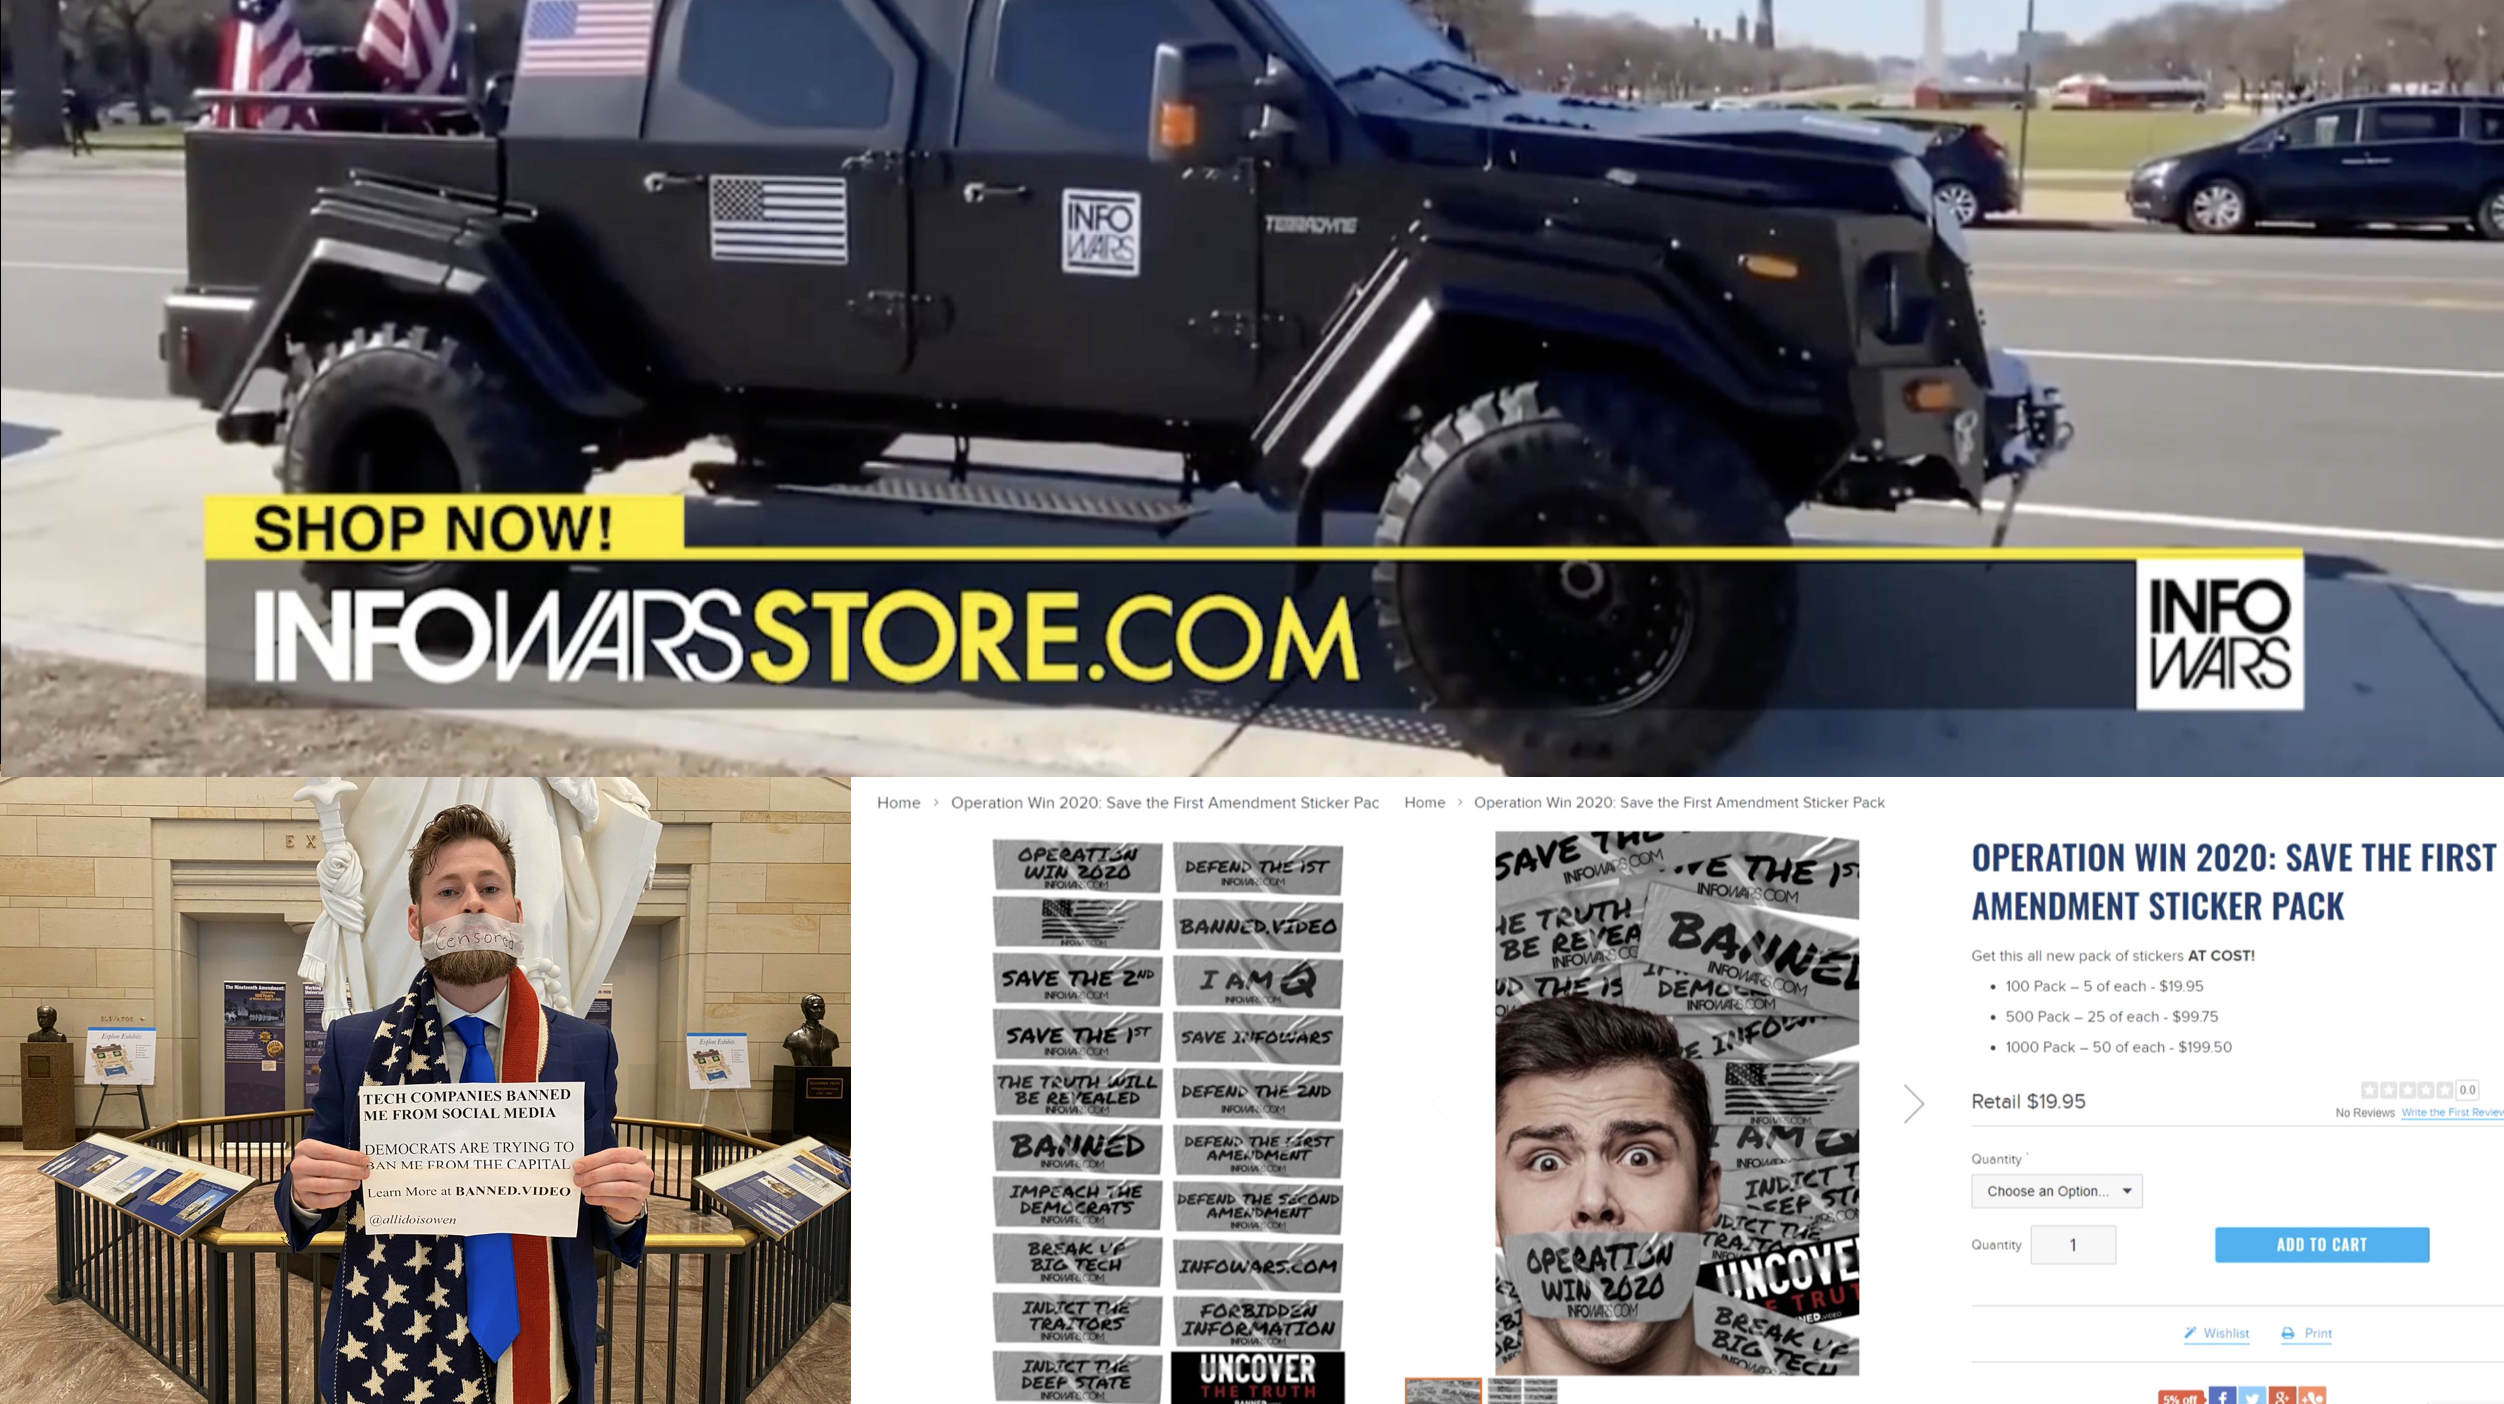 Infowars Store Owen Shroyer 1 24 2020